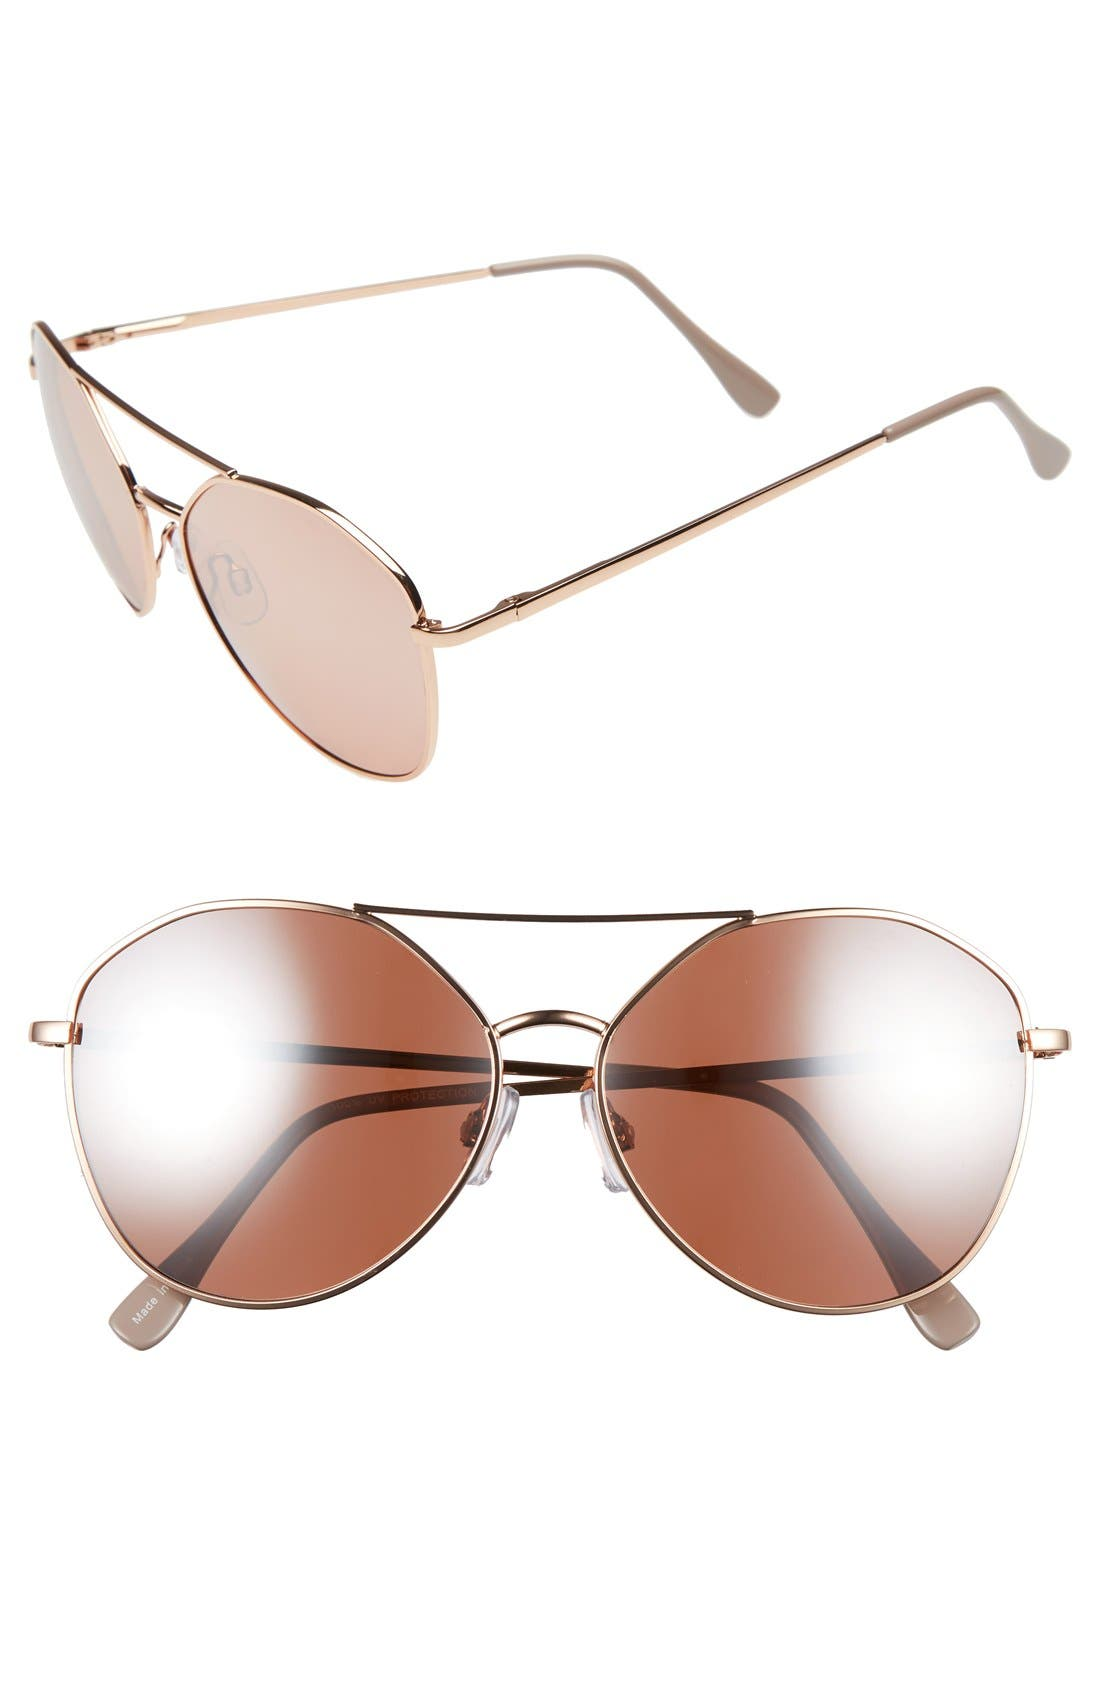 Alternate Image 1 Selected - BP. Slingshot 58mm Aviator Sunglasses